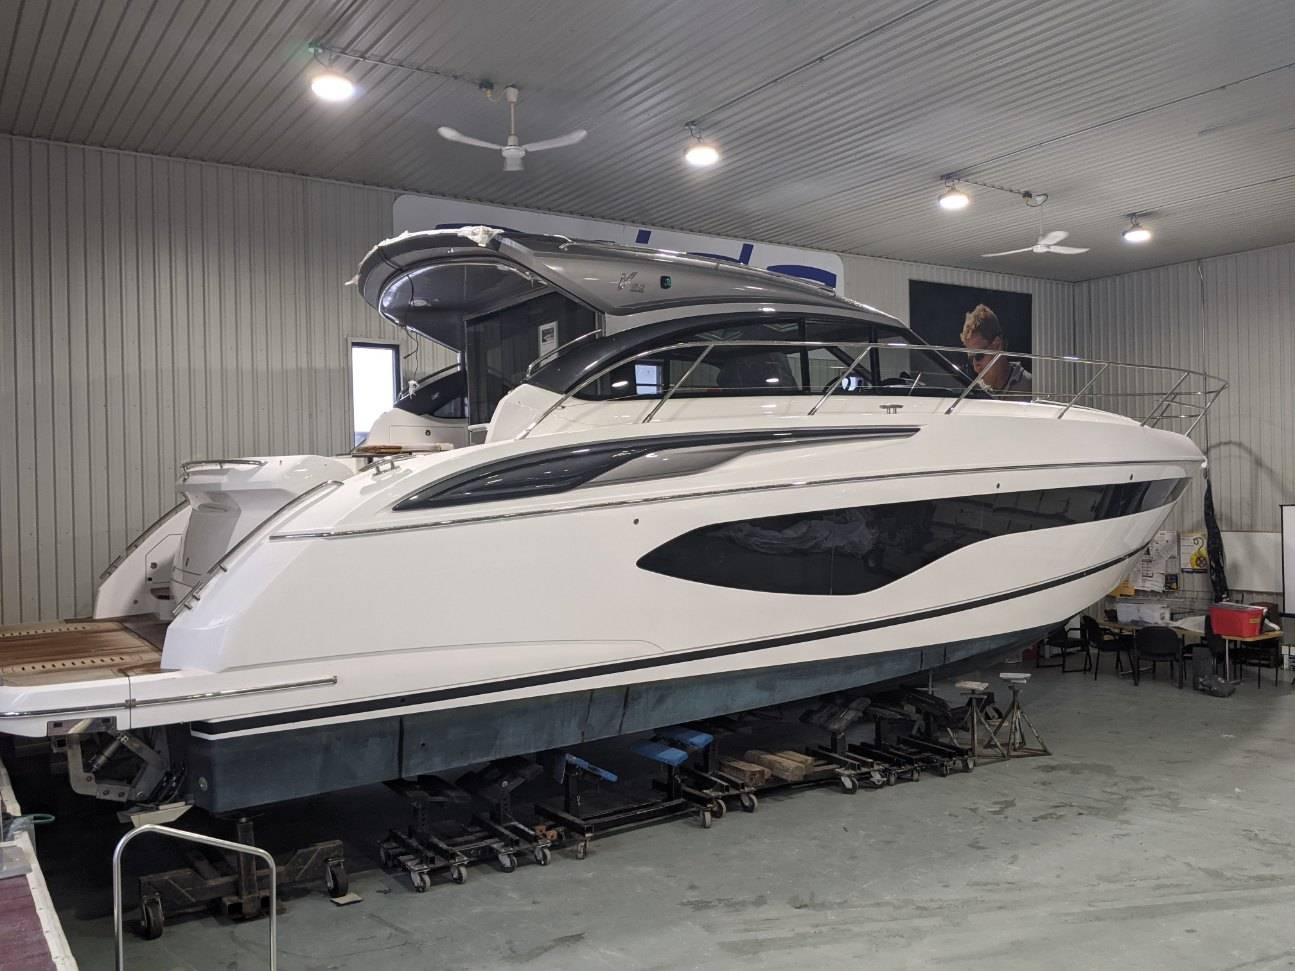 2021 Princess Yachts boat for sale, model of the boat is V50 & Image # 22 of 29